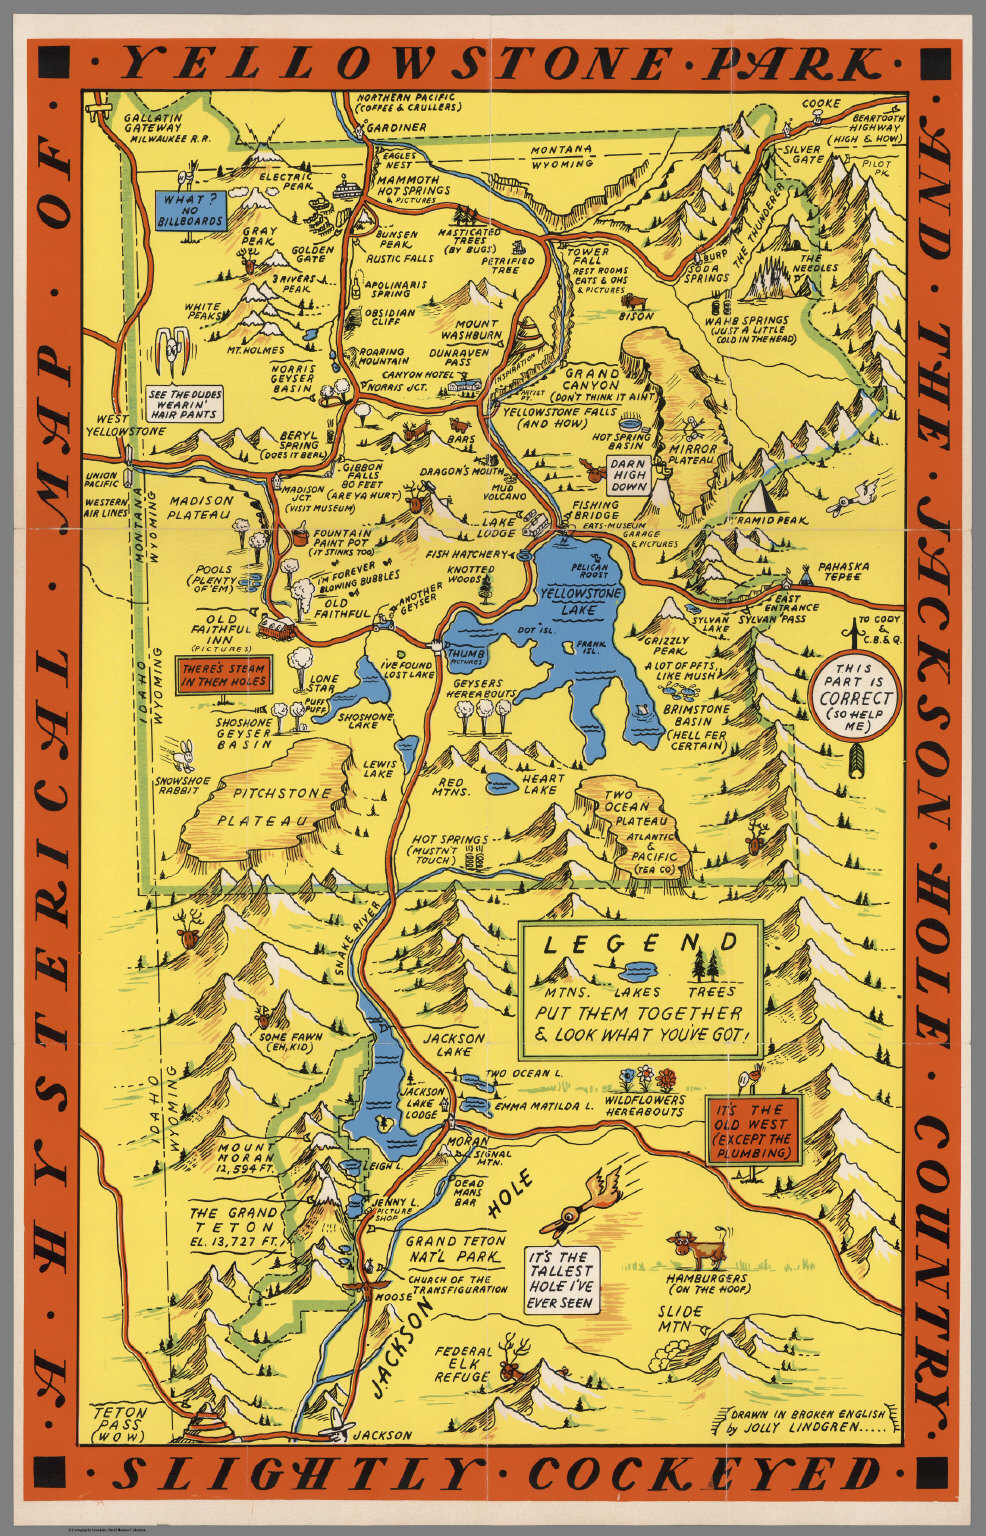 A Hysterical Map Of The Yellowstone Park And The Jackson ...